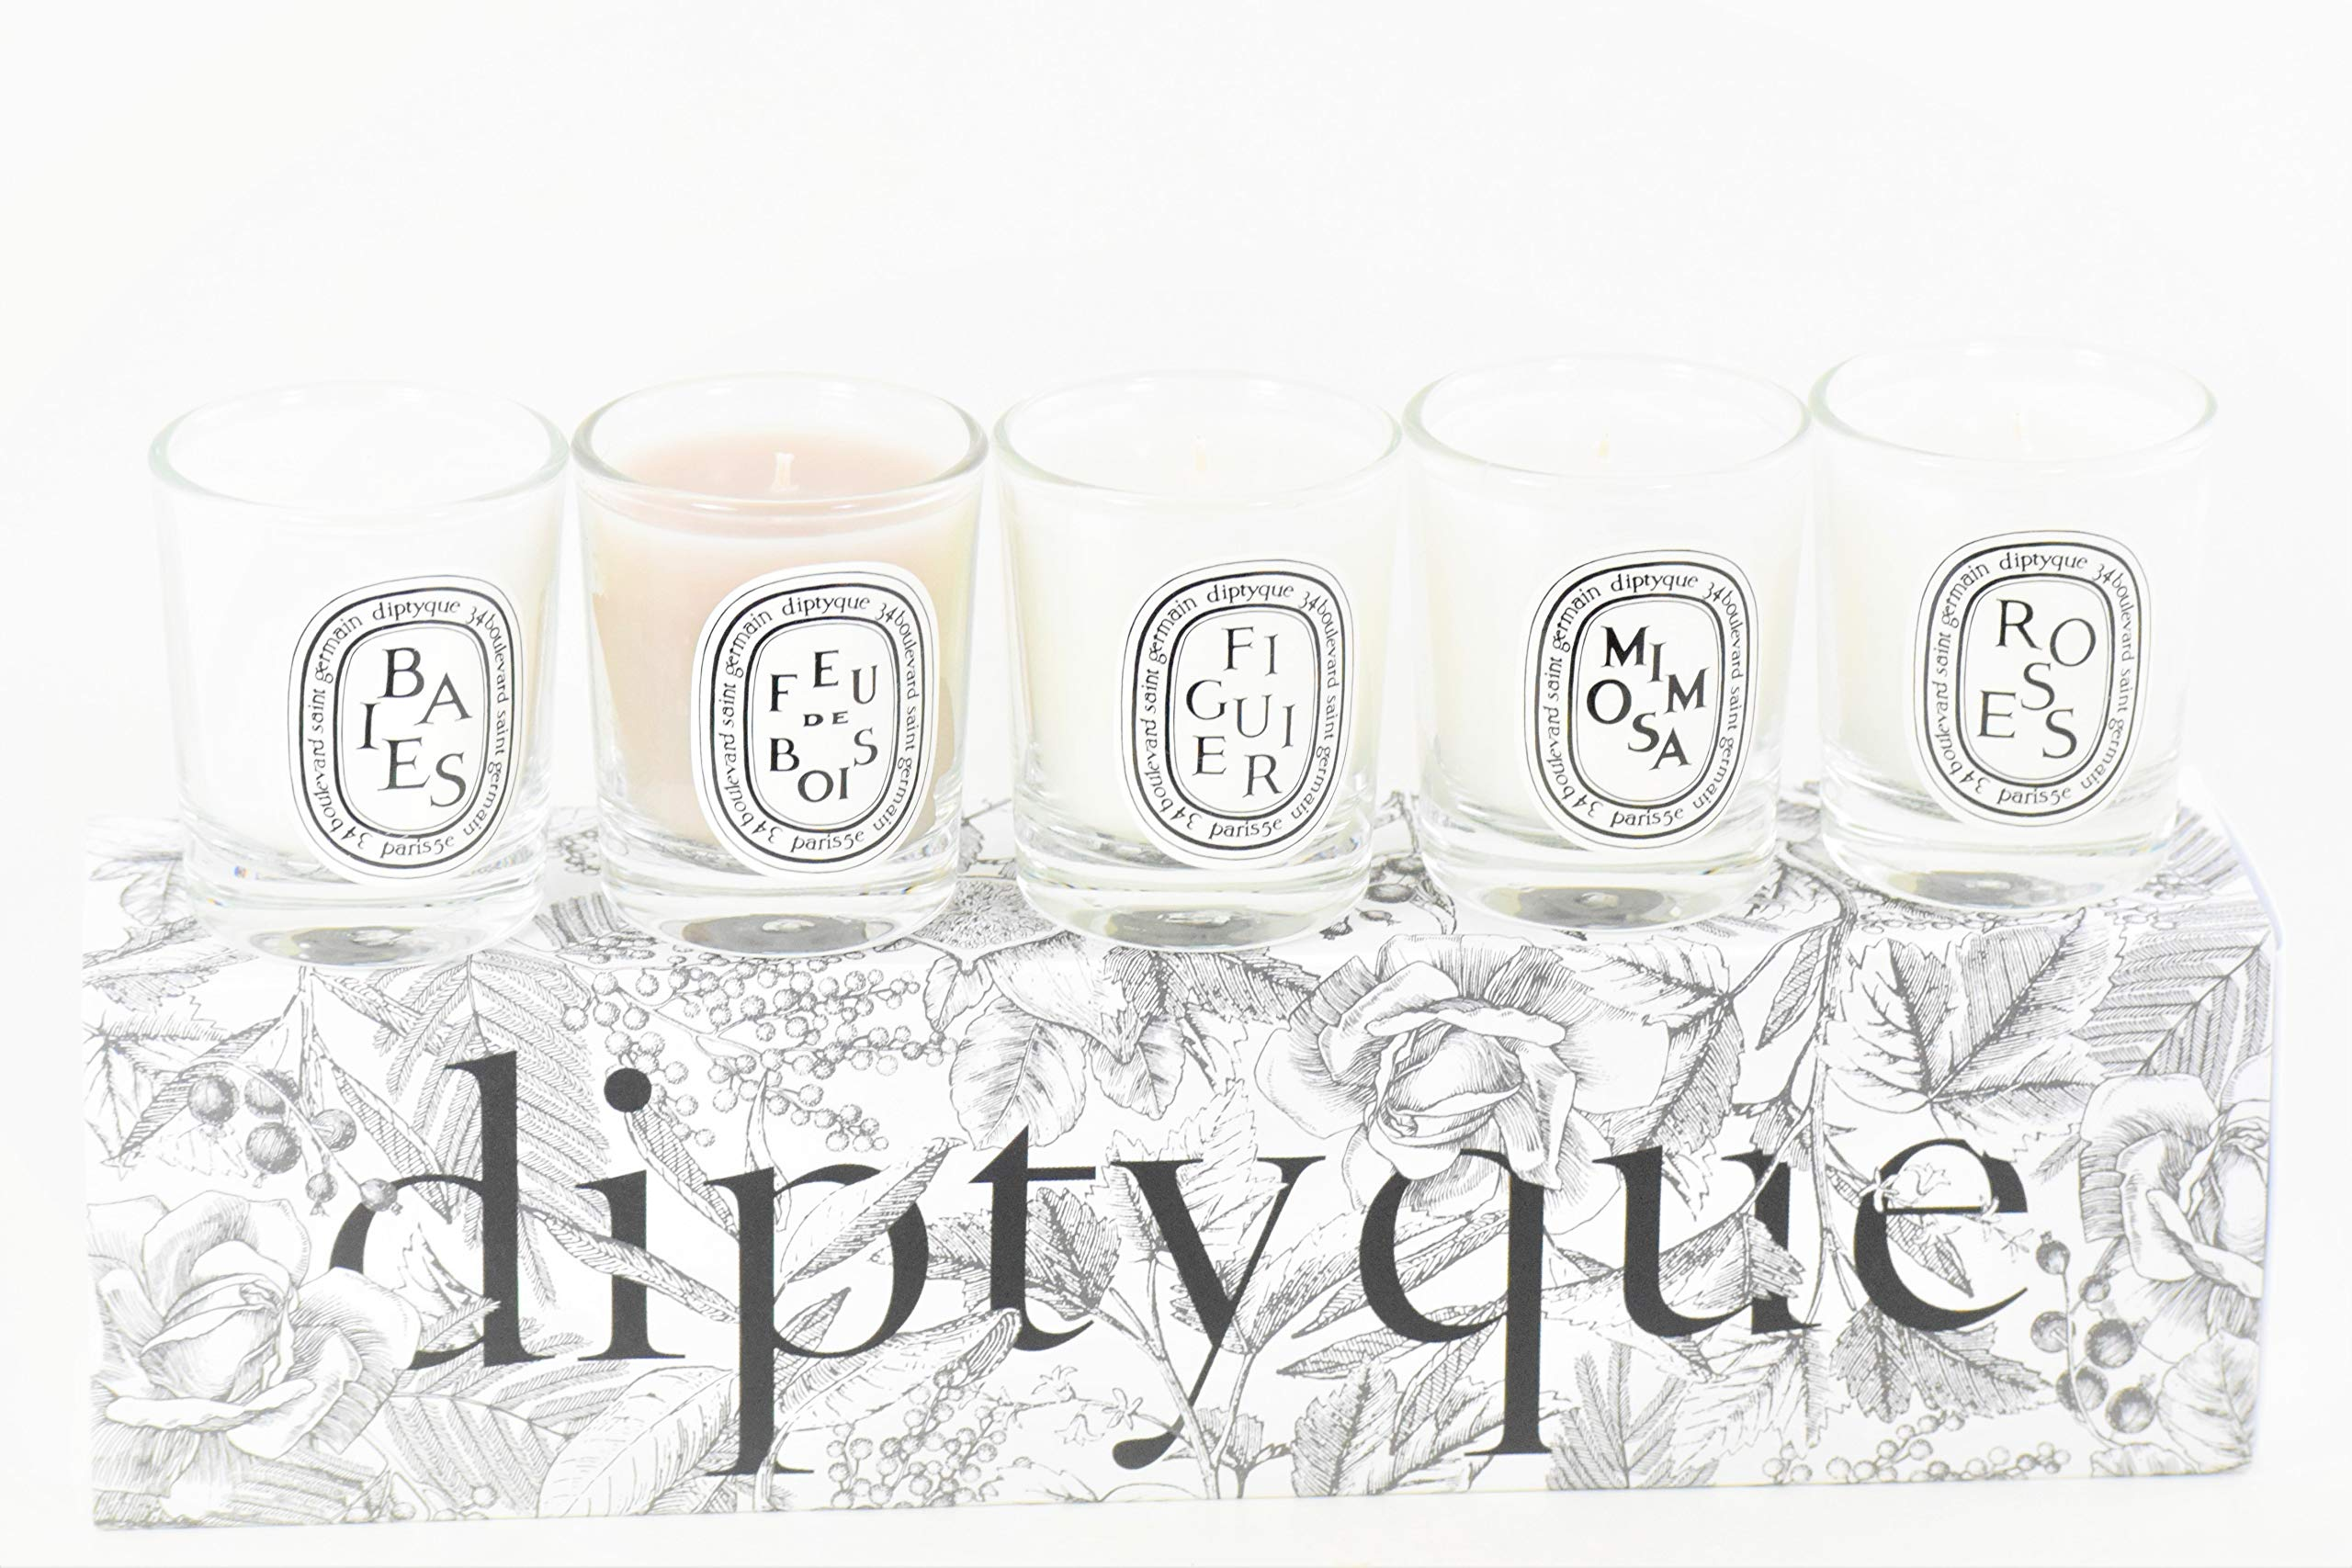 Diptyque 5 Piece Mini Candle Set Baies, Feu de Bois, Figuier, Mimosa & Roses - Exclusive 2019 Fall Collection by Diptyque